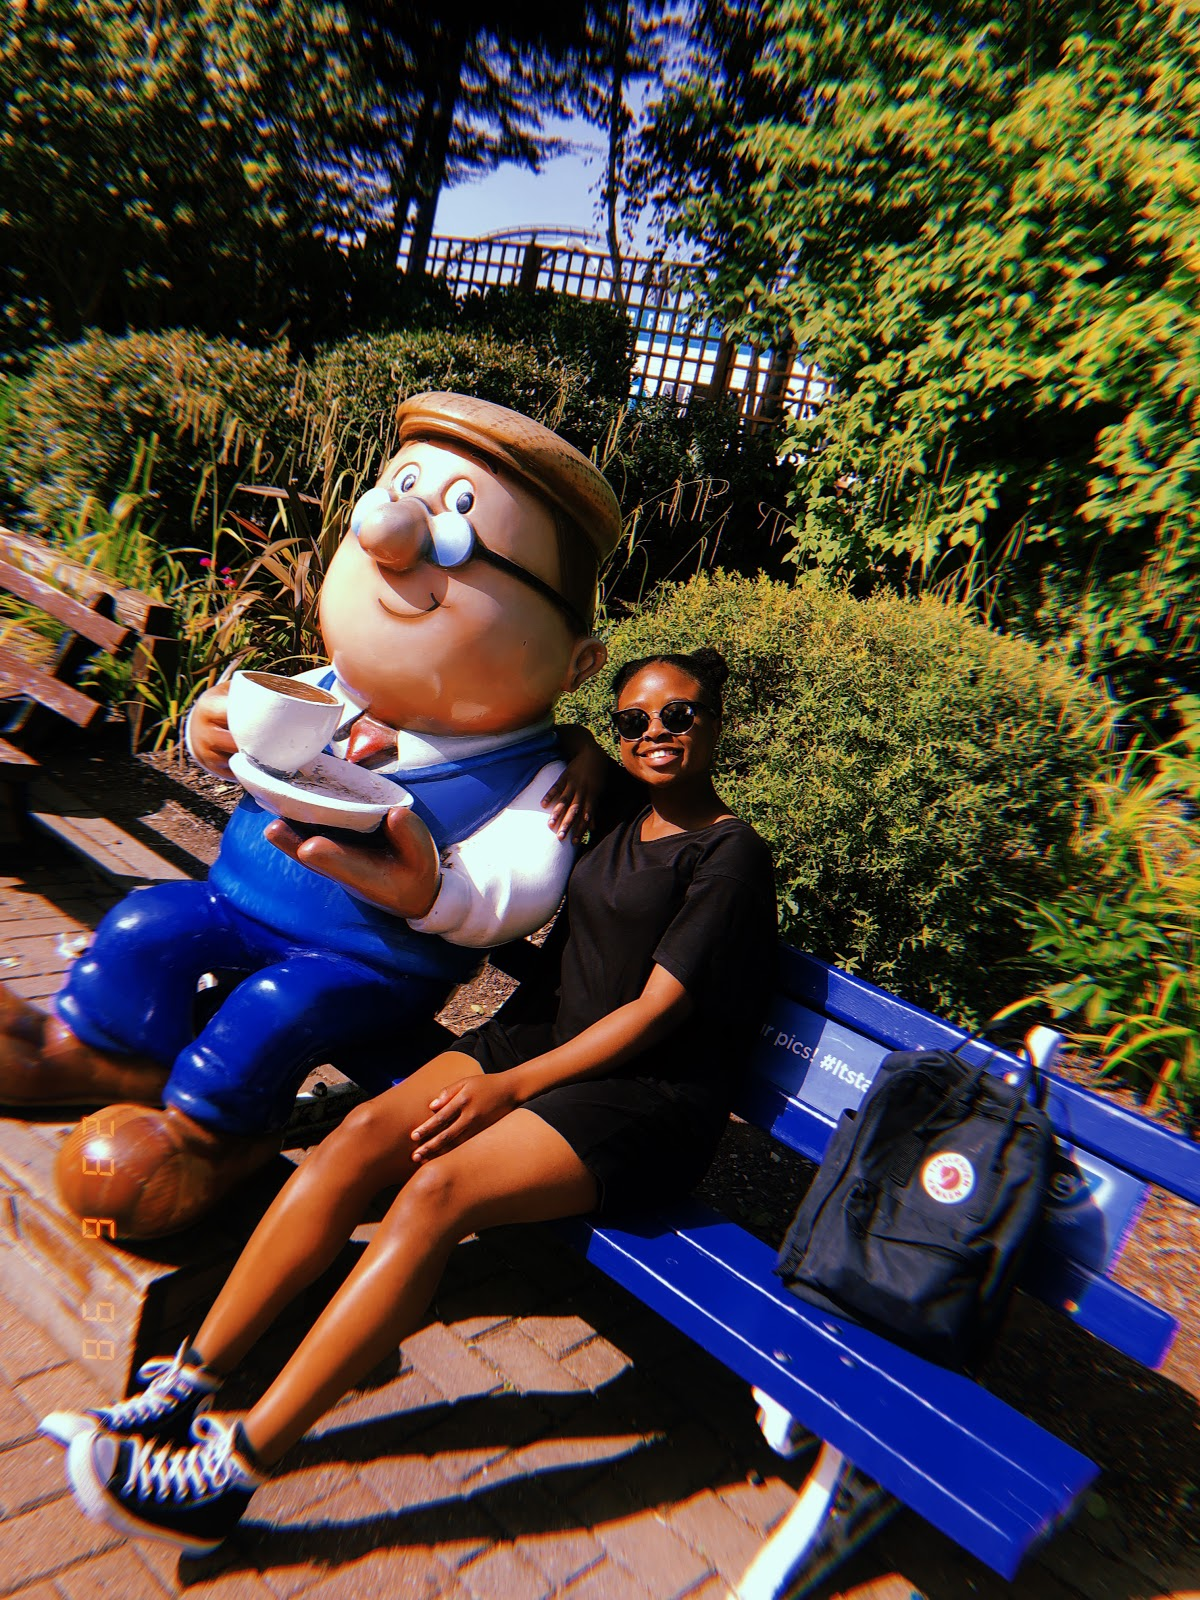 A Polaroid style shot of me sitting on a bench next to a cartoon character